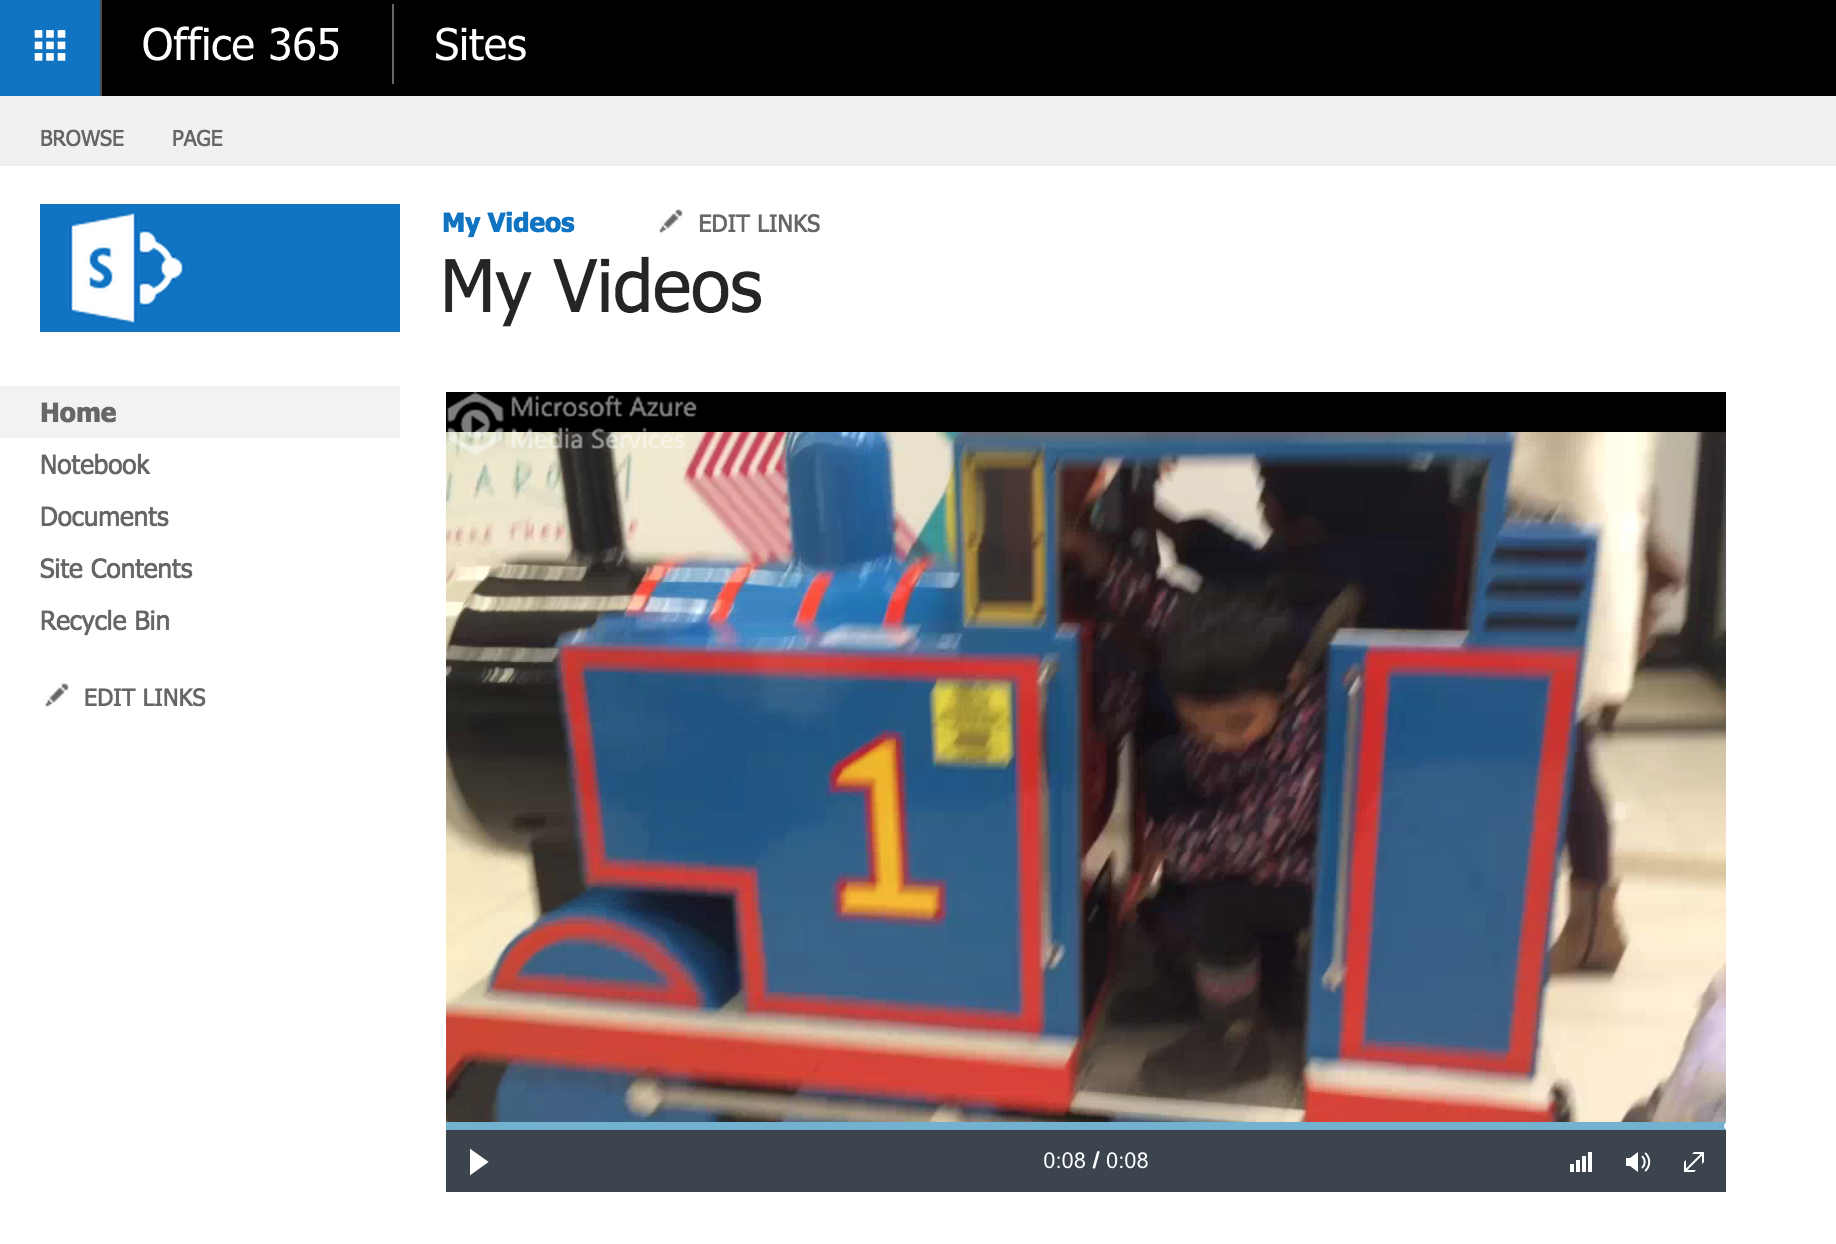 How to play an Office 365 Video using Azure Media Player and